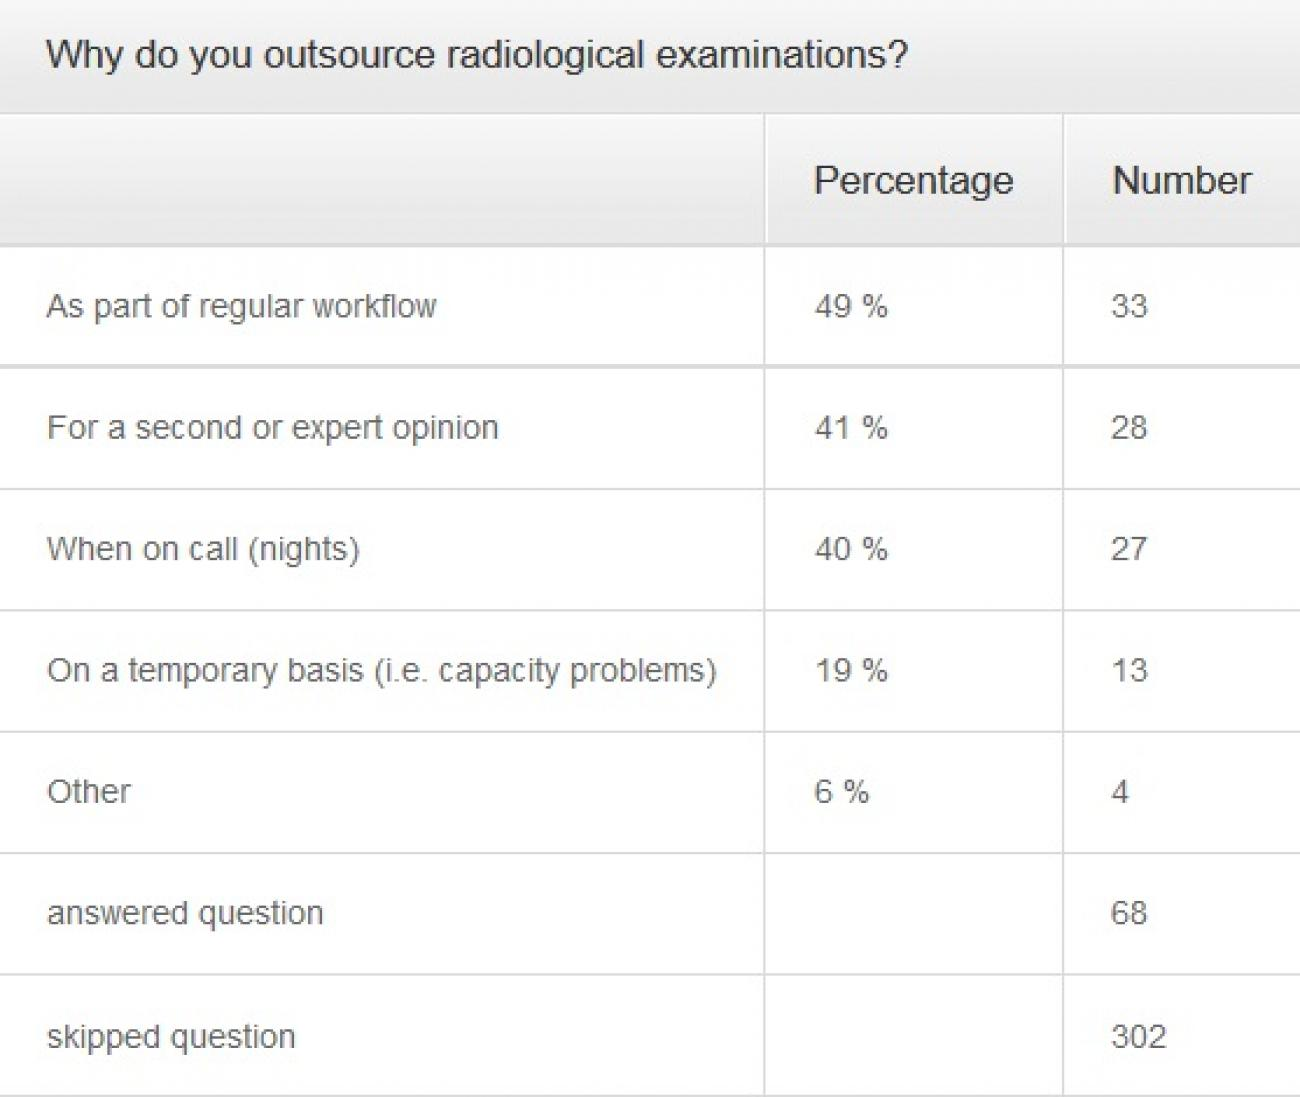 Reasons_for_outsourcing_radiological_examinations